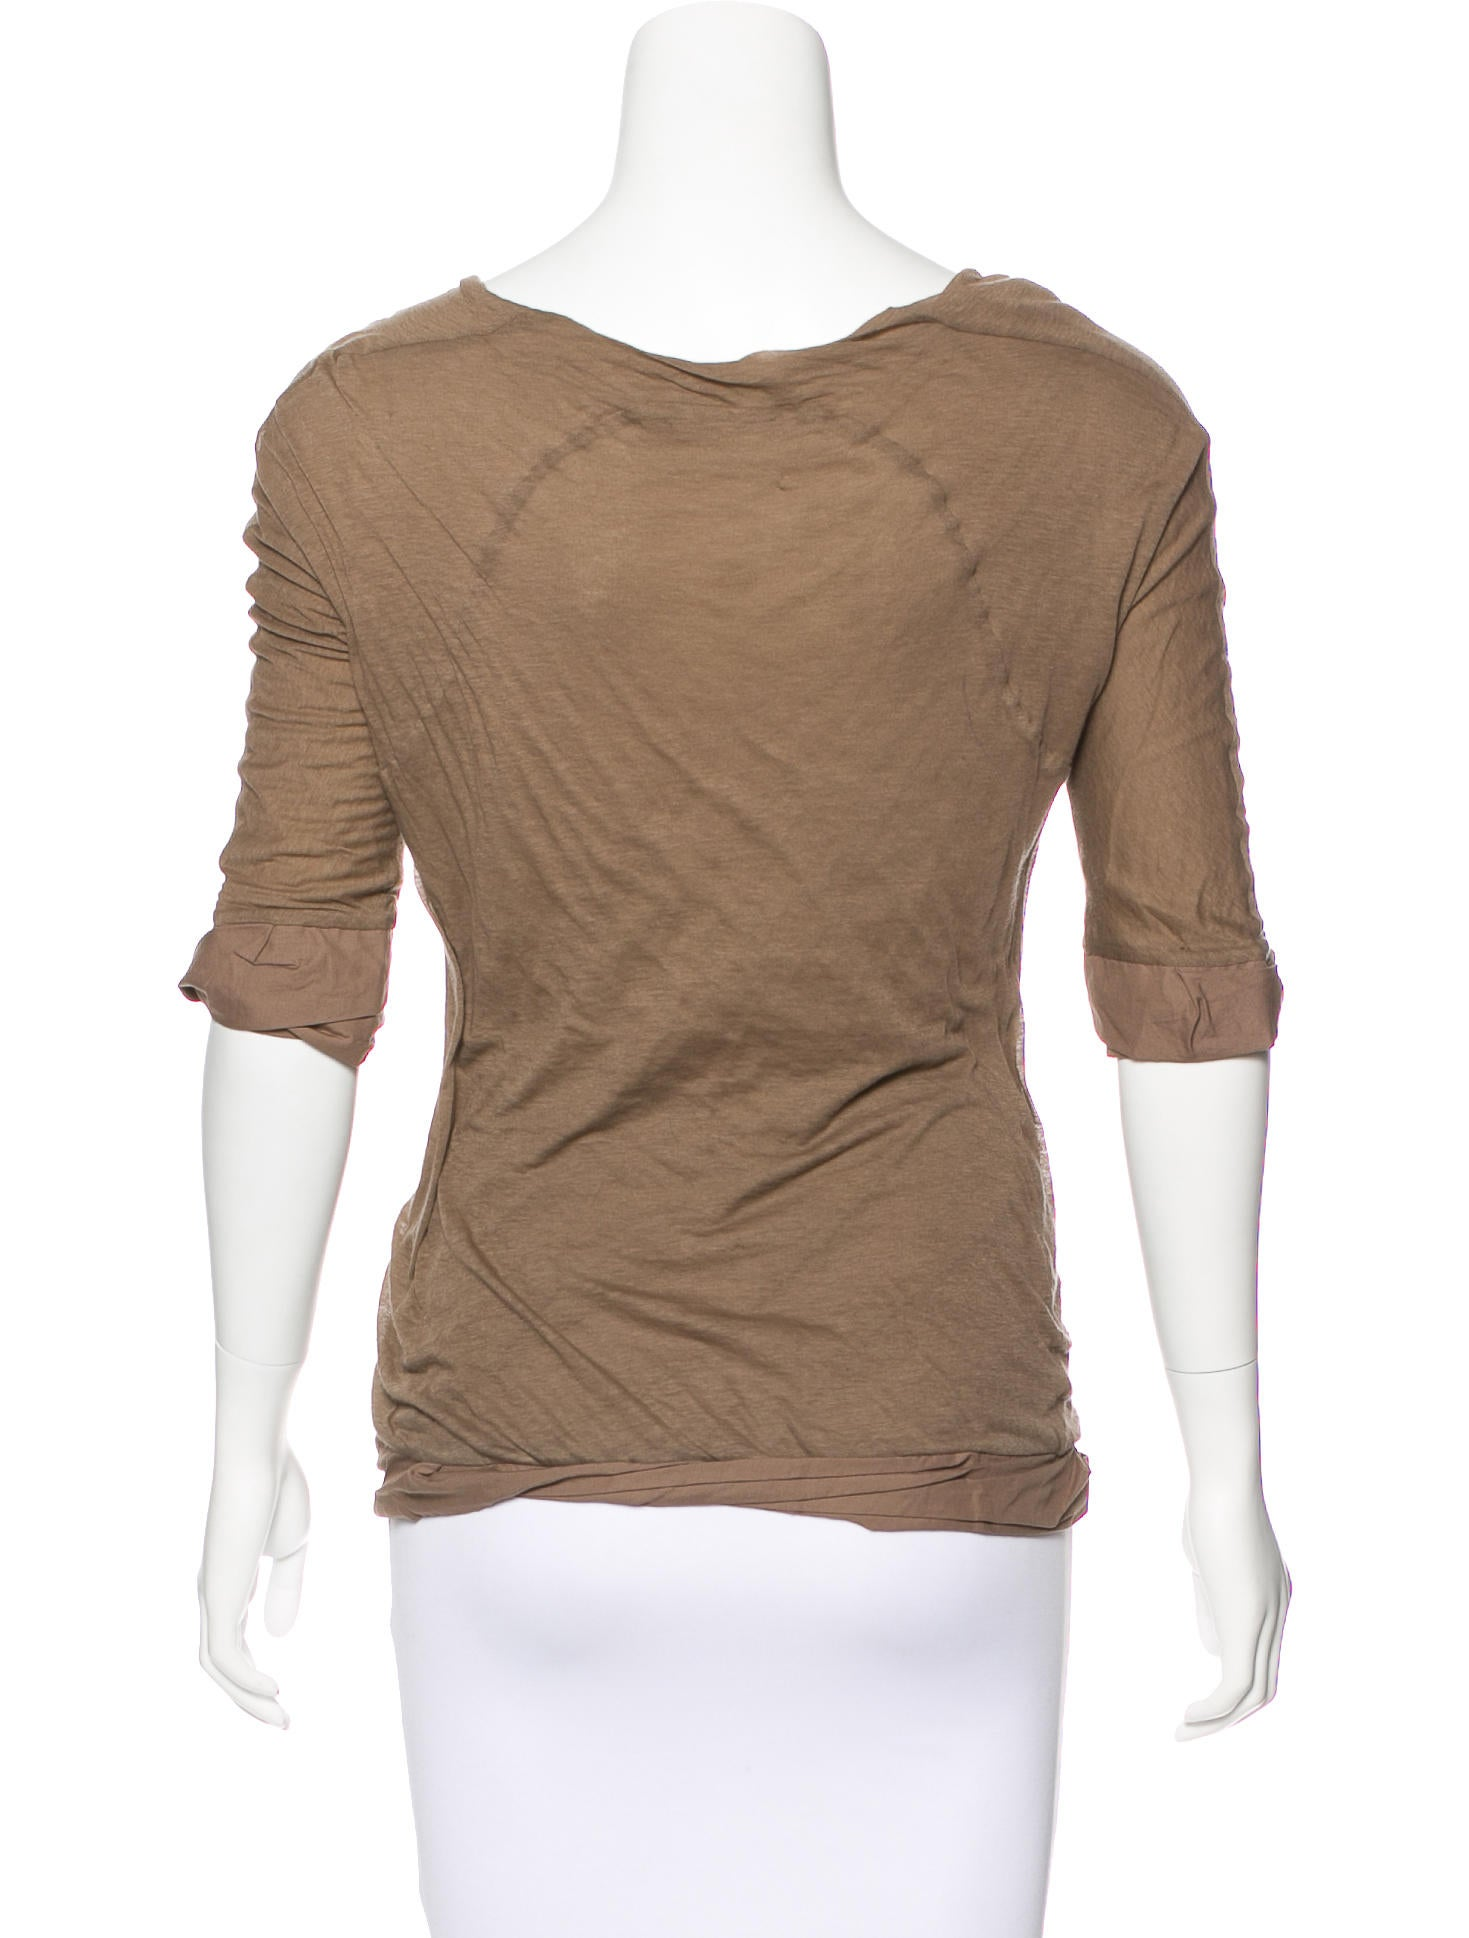 Bottega veneta scoop neck three quarter sleeve t shirt for Bottega veneta t shirt